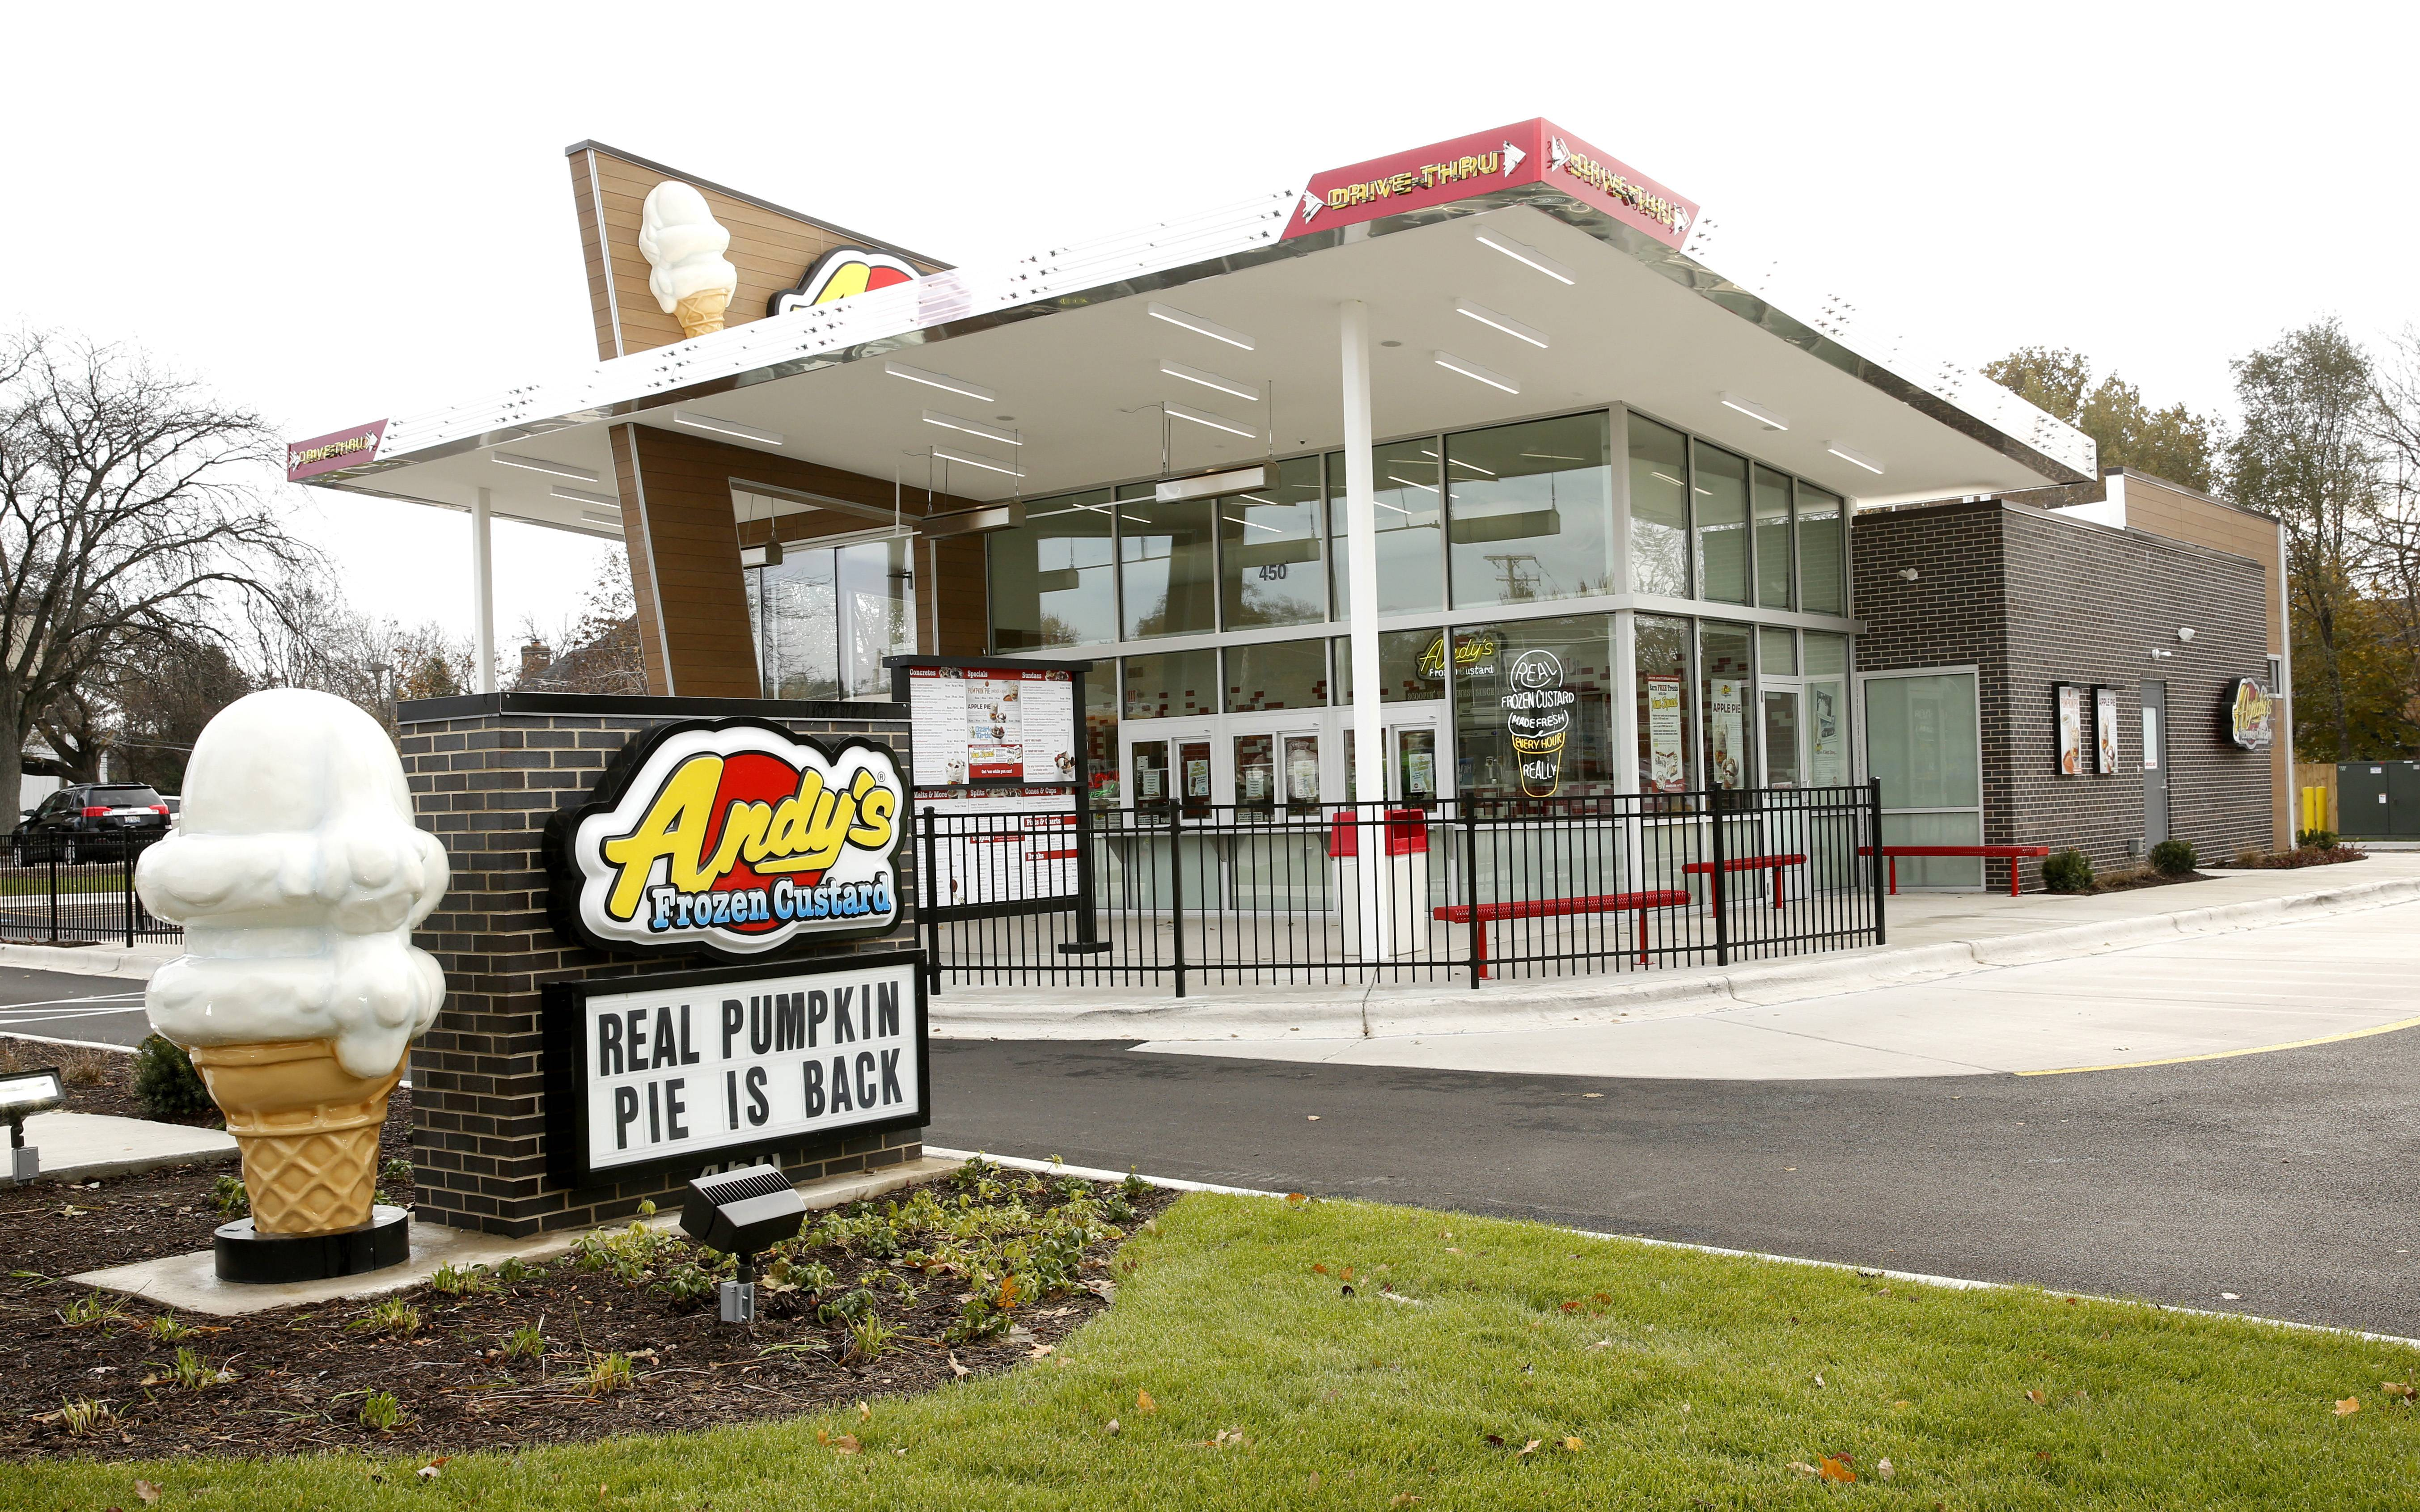 Andy's Frozen Custard intends to open Glen Ellyn shop